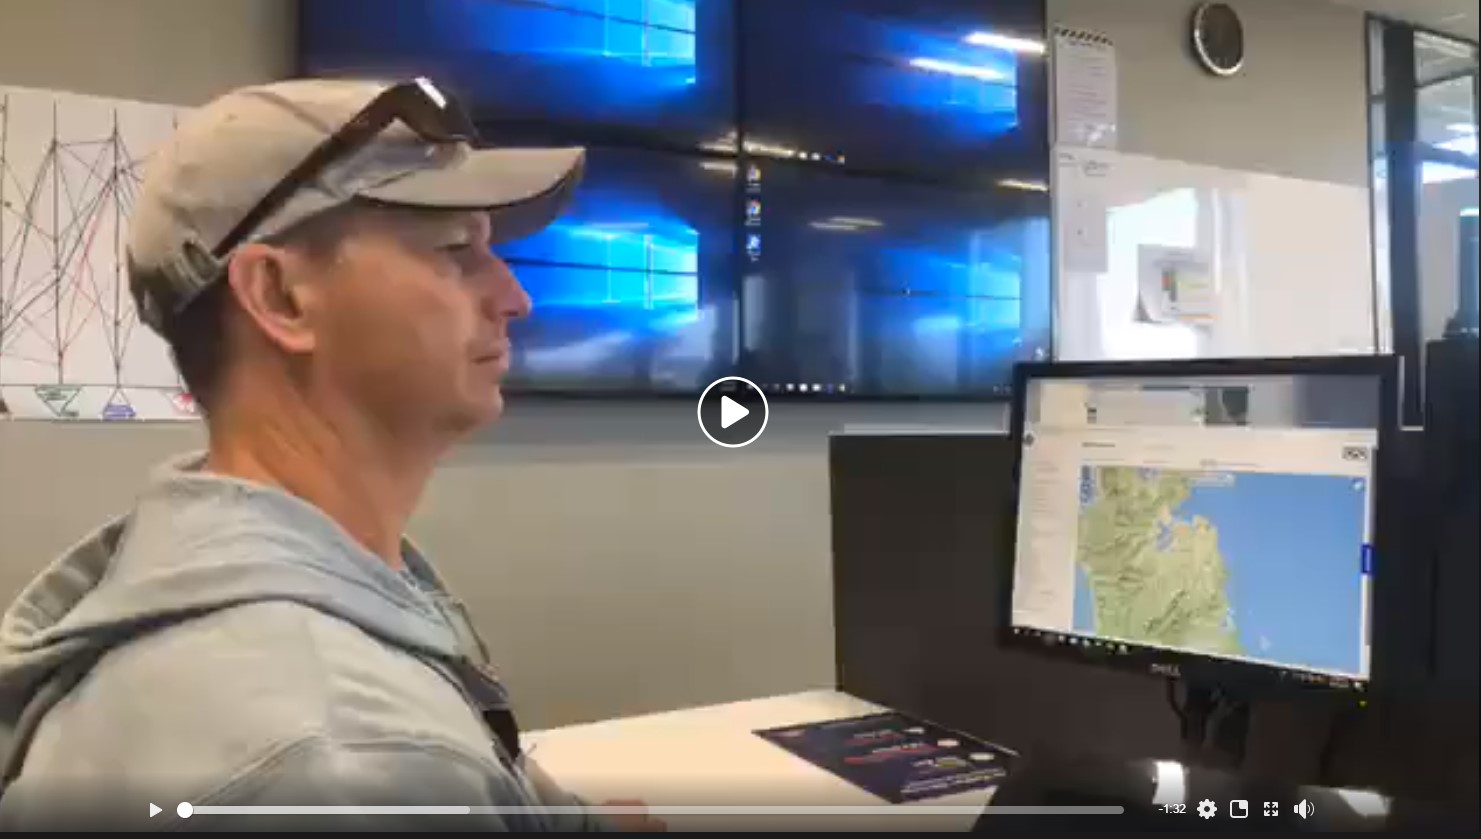 ideo - Civil Defence - Waikato: Final update on tsunami warning and the process with Rick Liefting, Team Leader - Regional Hazards and Environmental Compliance, Waikato Regional Council.